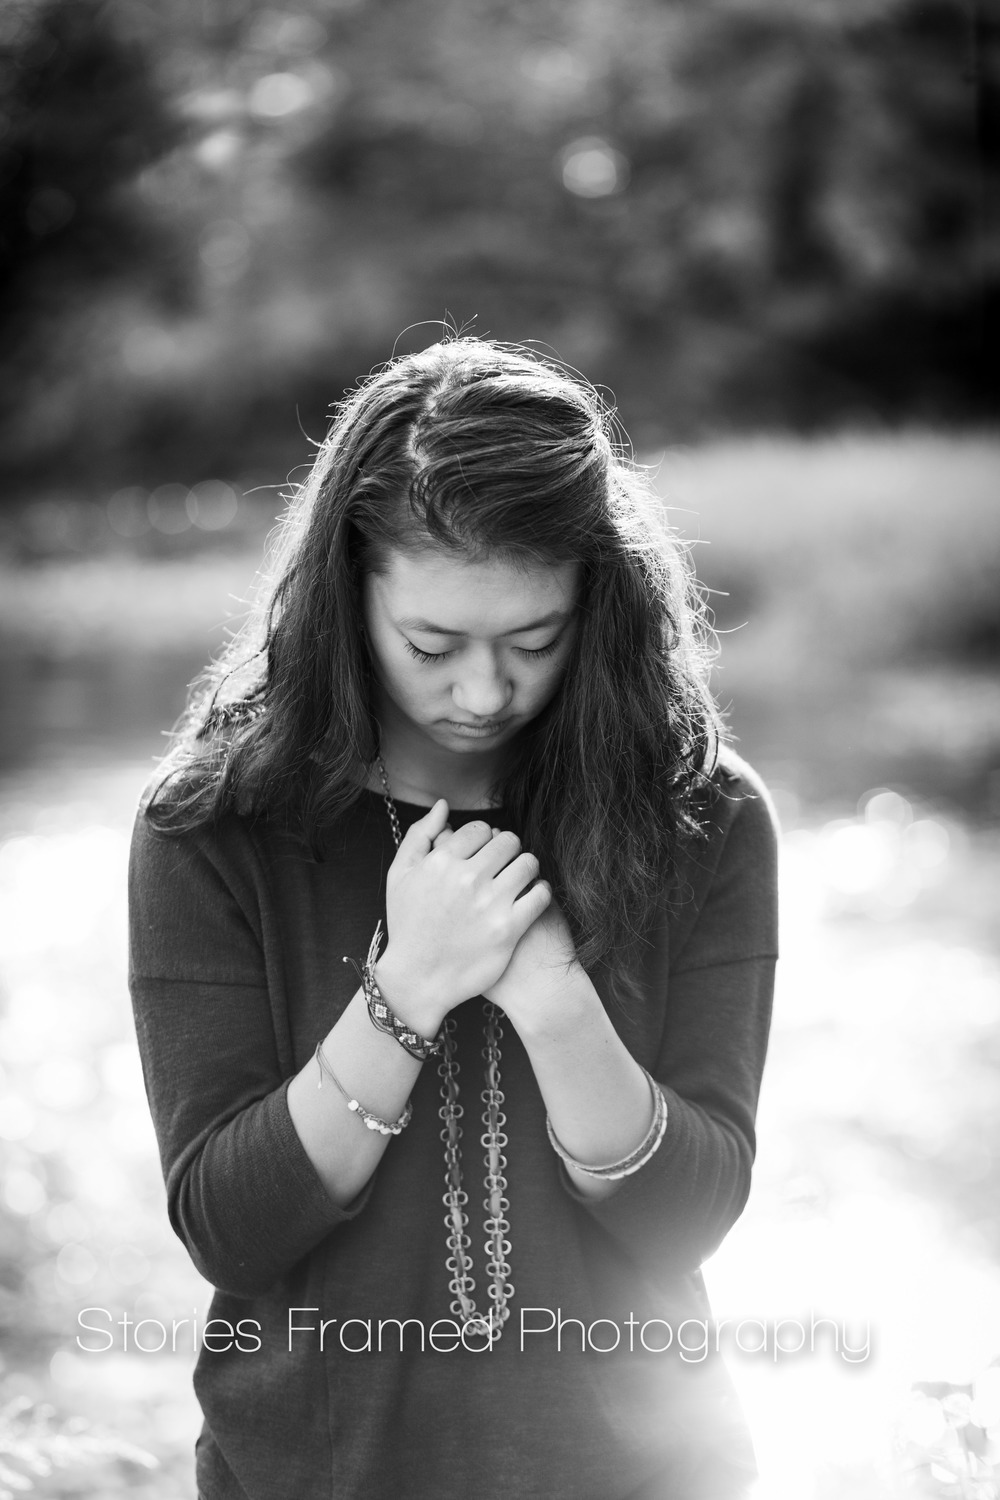 Stories Framed Photography | Senior | Class of 2015 | Elizabeth B&W